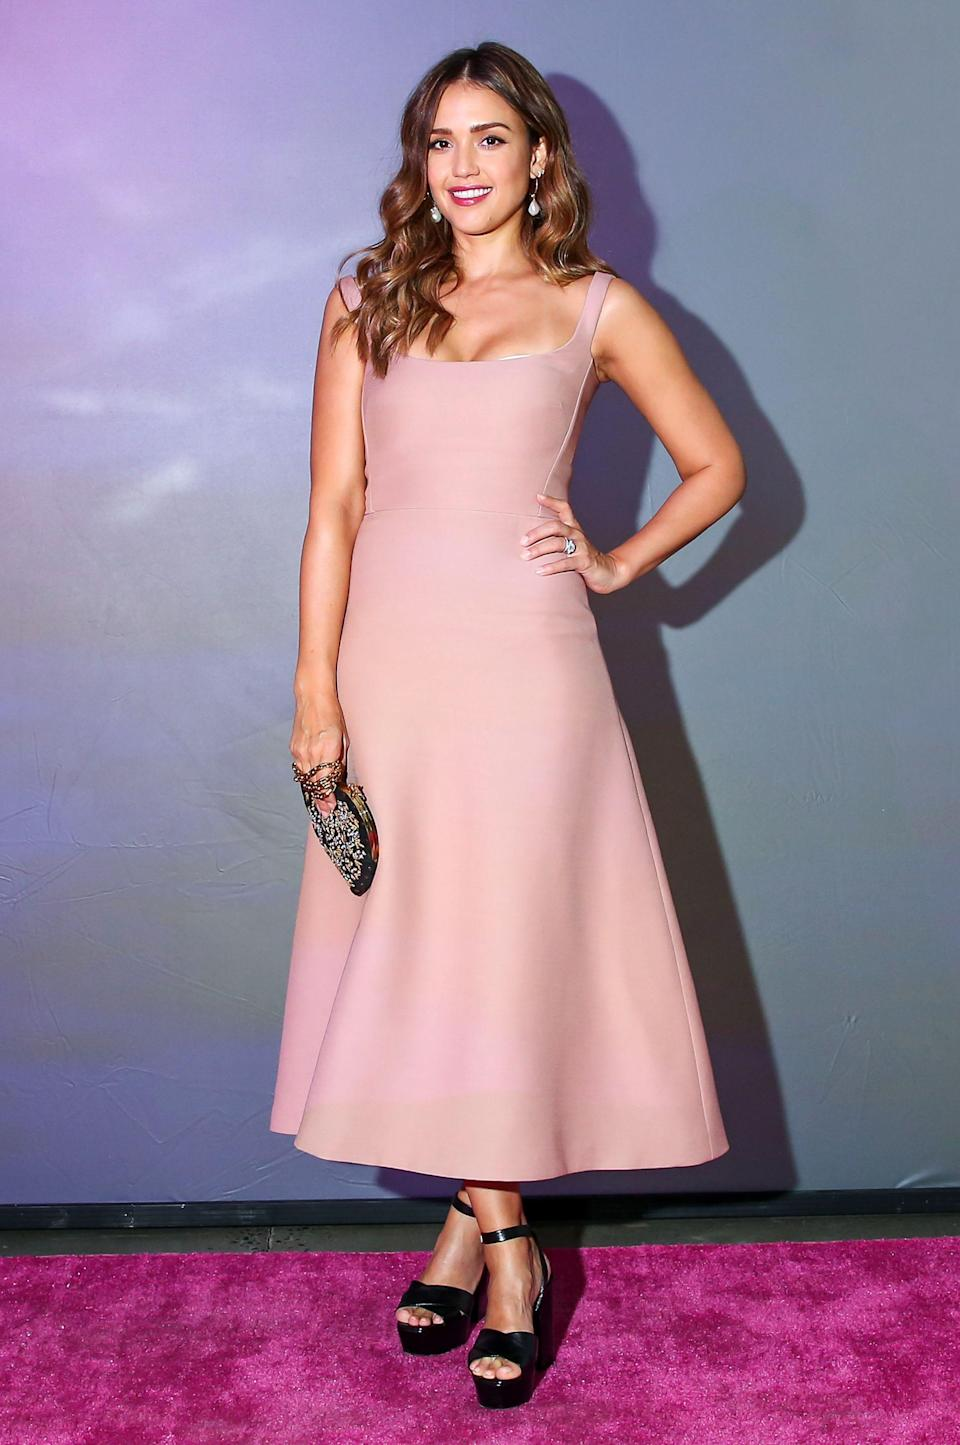 <p>Representing her beauty company 'Honest', Jessica slipped into a Dior midi dress with accessories and footwear by Saint Laurent for an awards event this month. <em>[Photo: Rex]</em> </p>